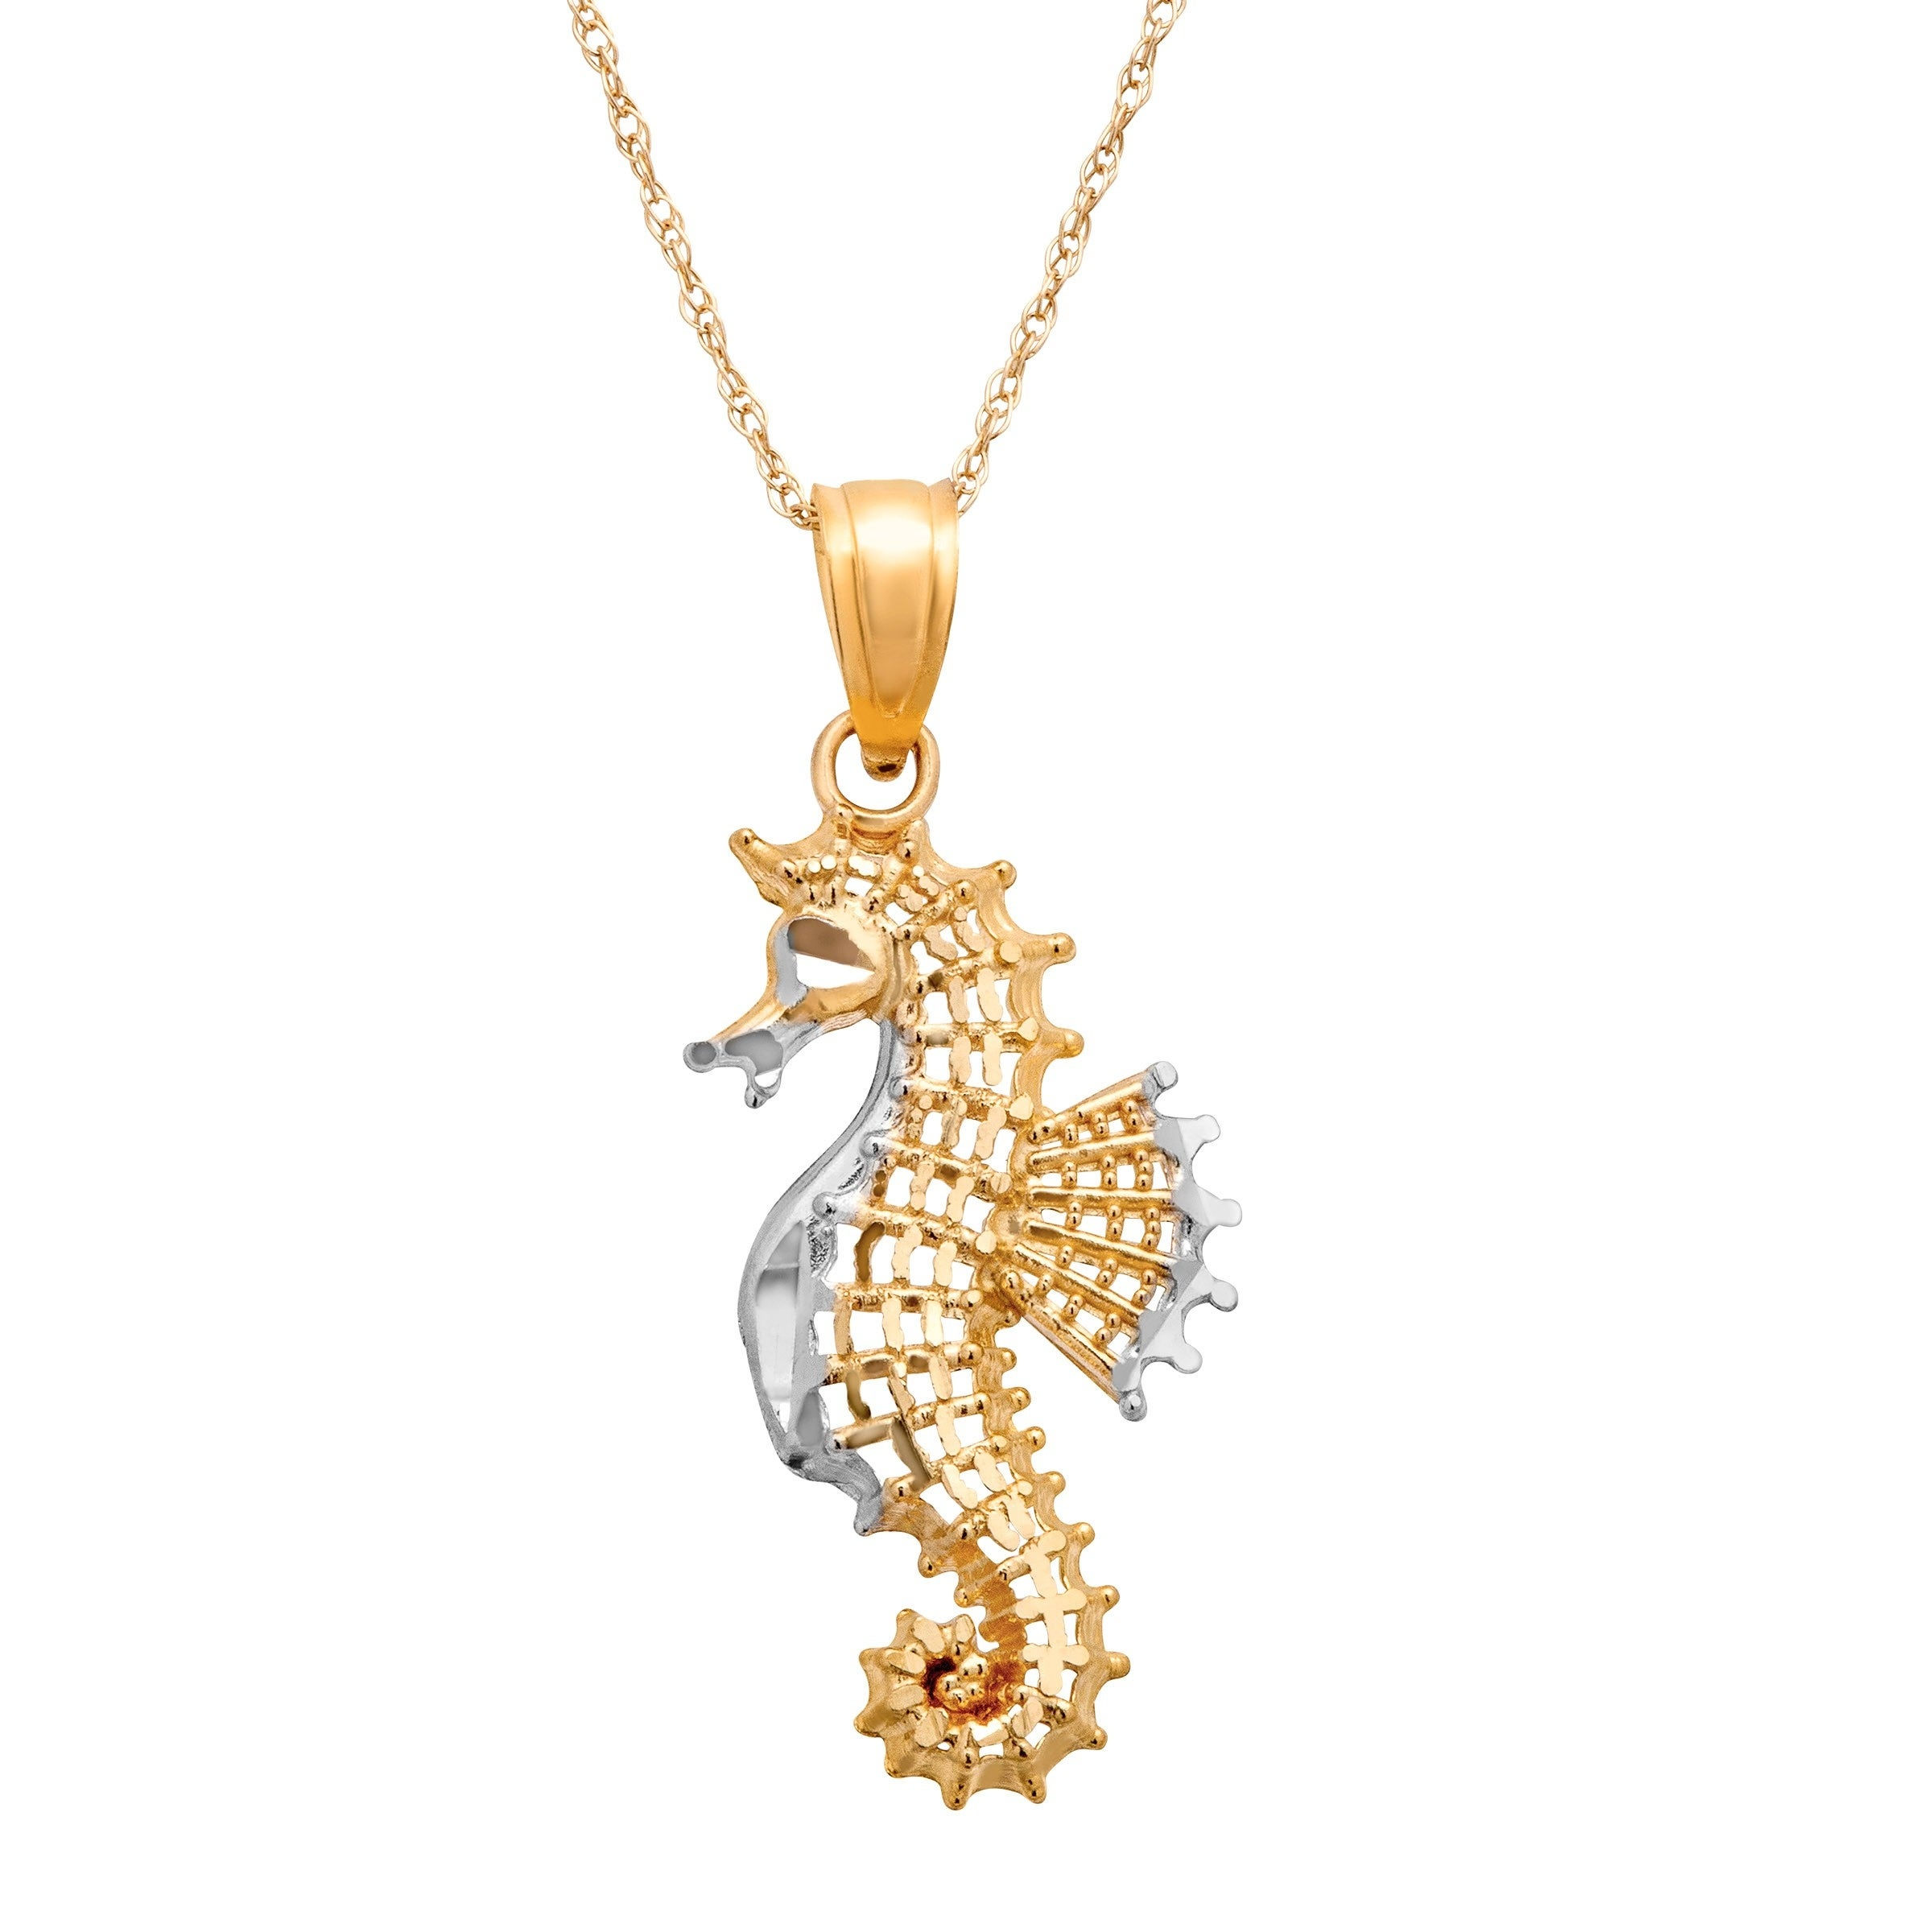 pendant stephanie necklace products custom handmade seahorse original unicorn cord thumbnail